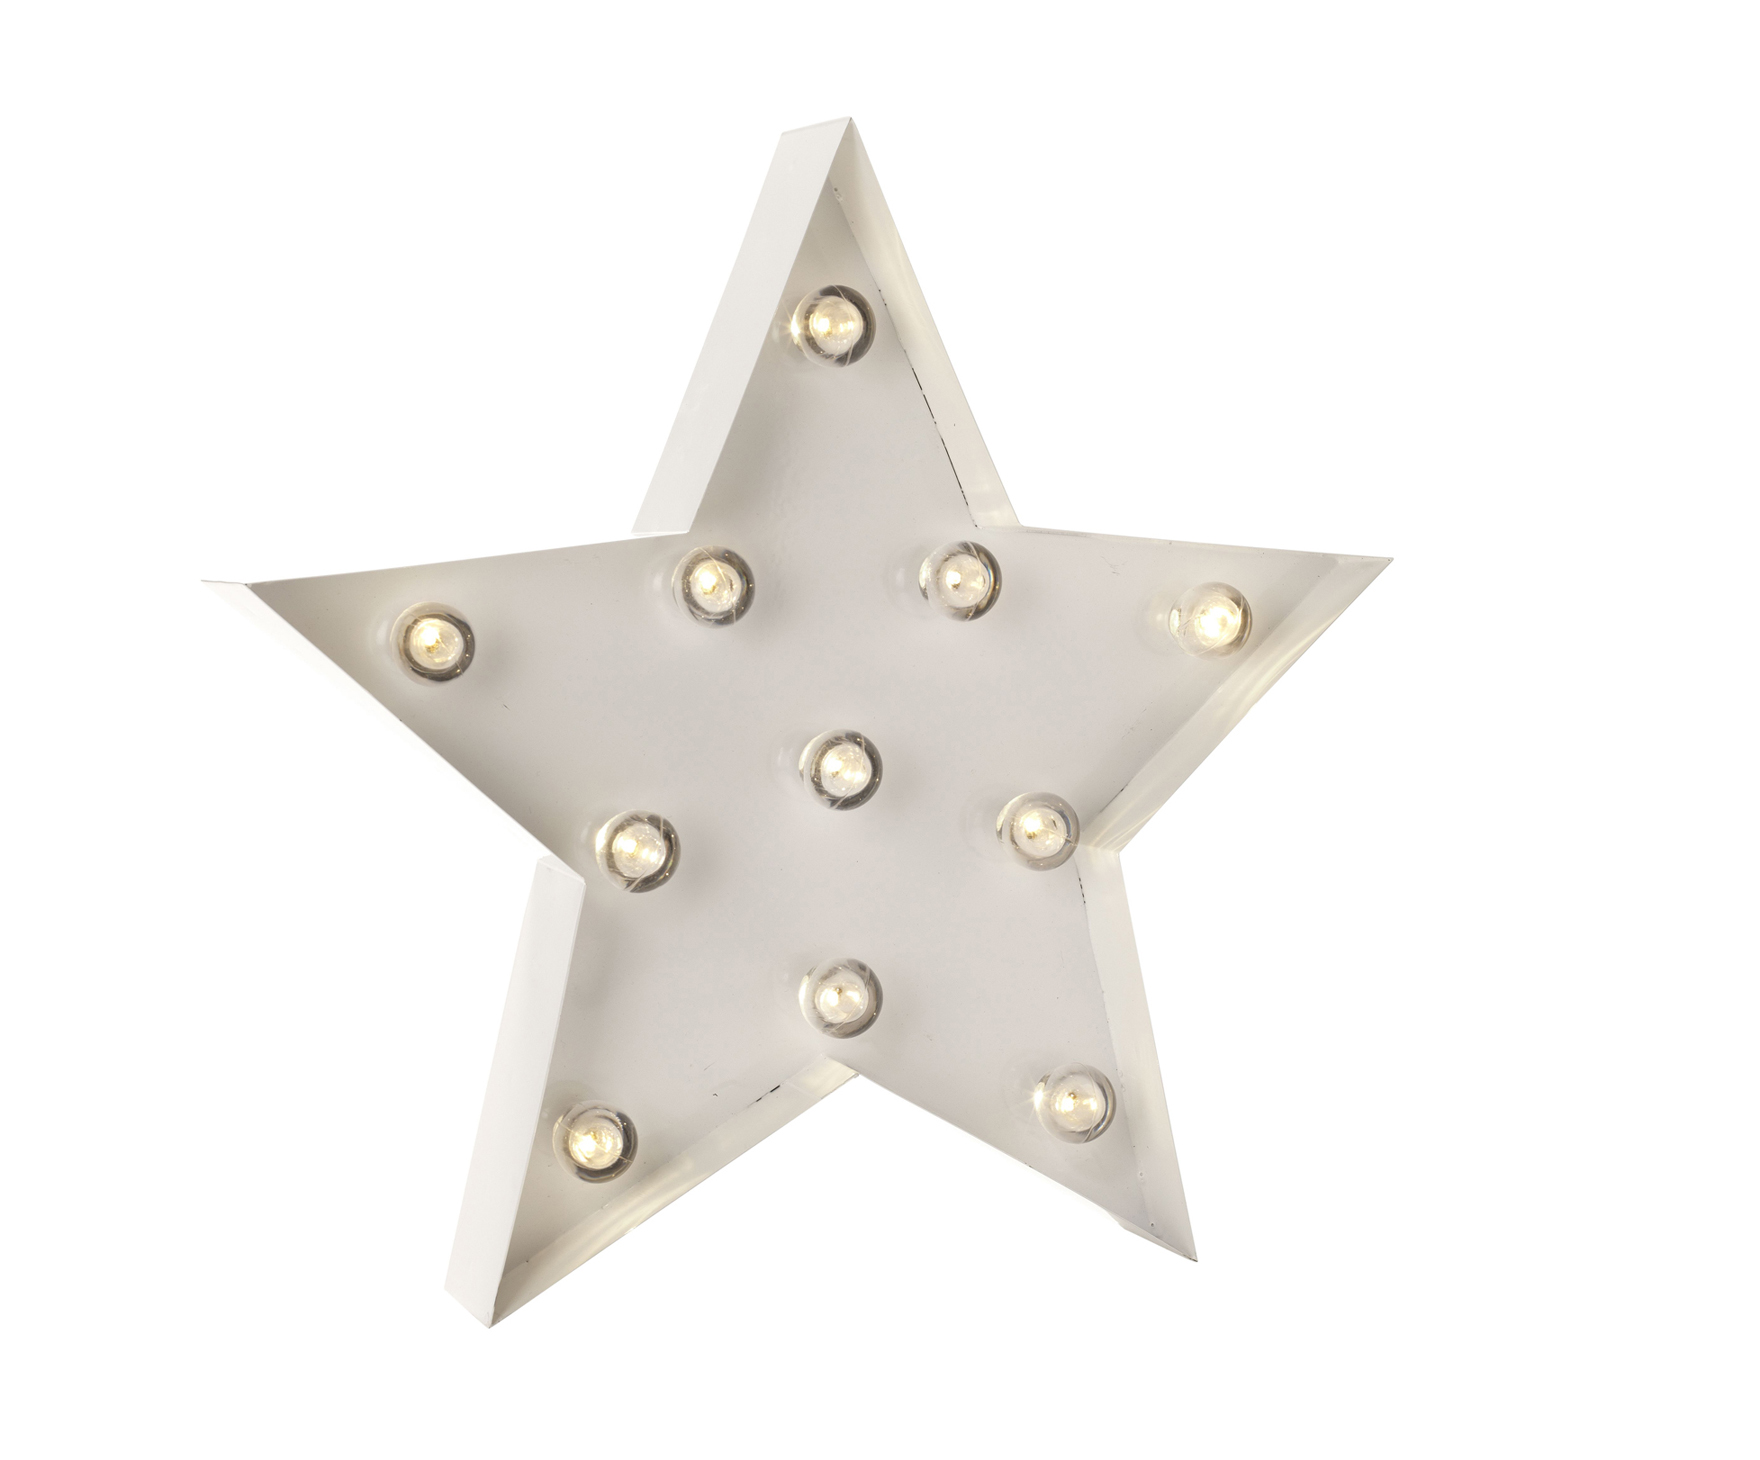 Linea Medium Light Up Star, £25, House of Fraser